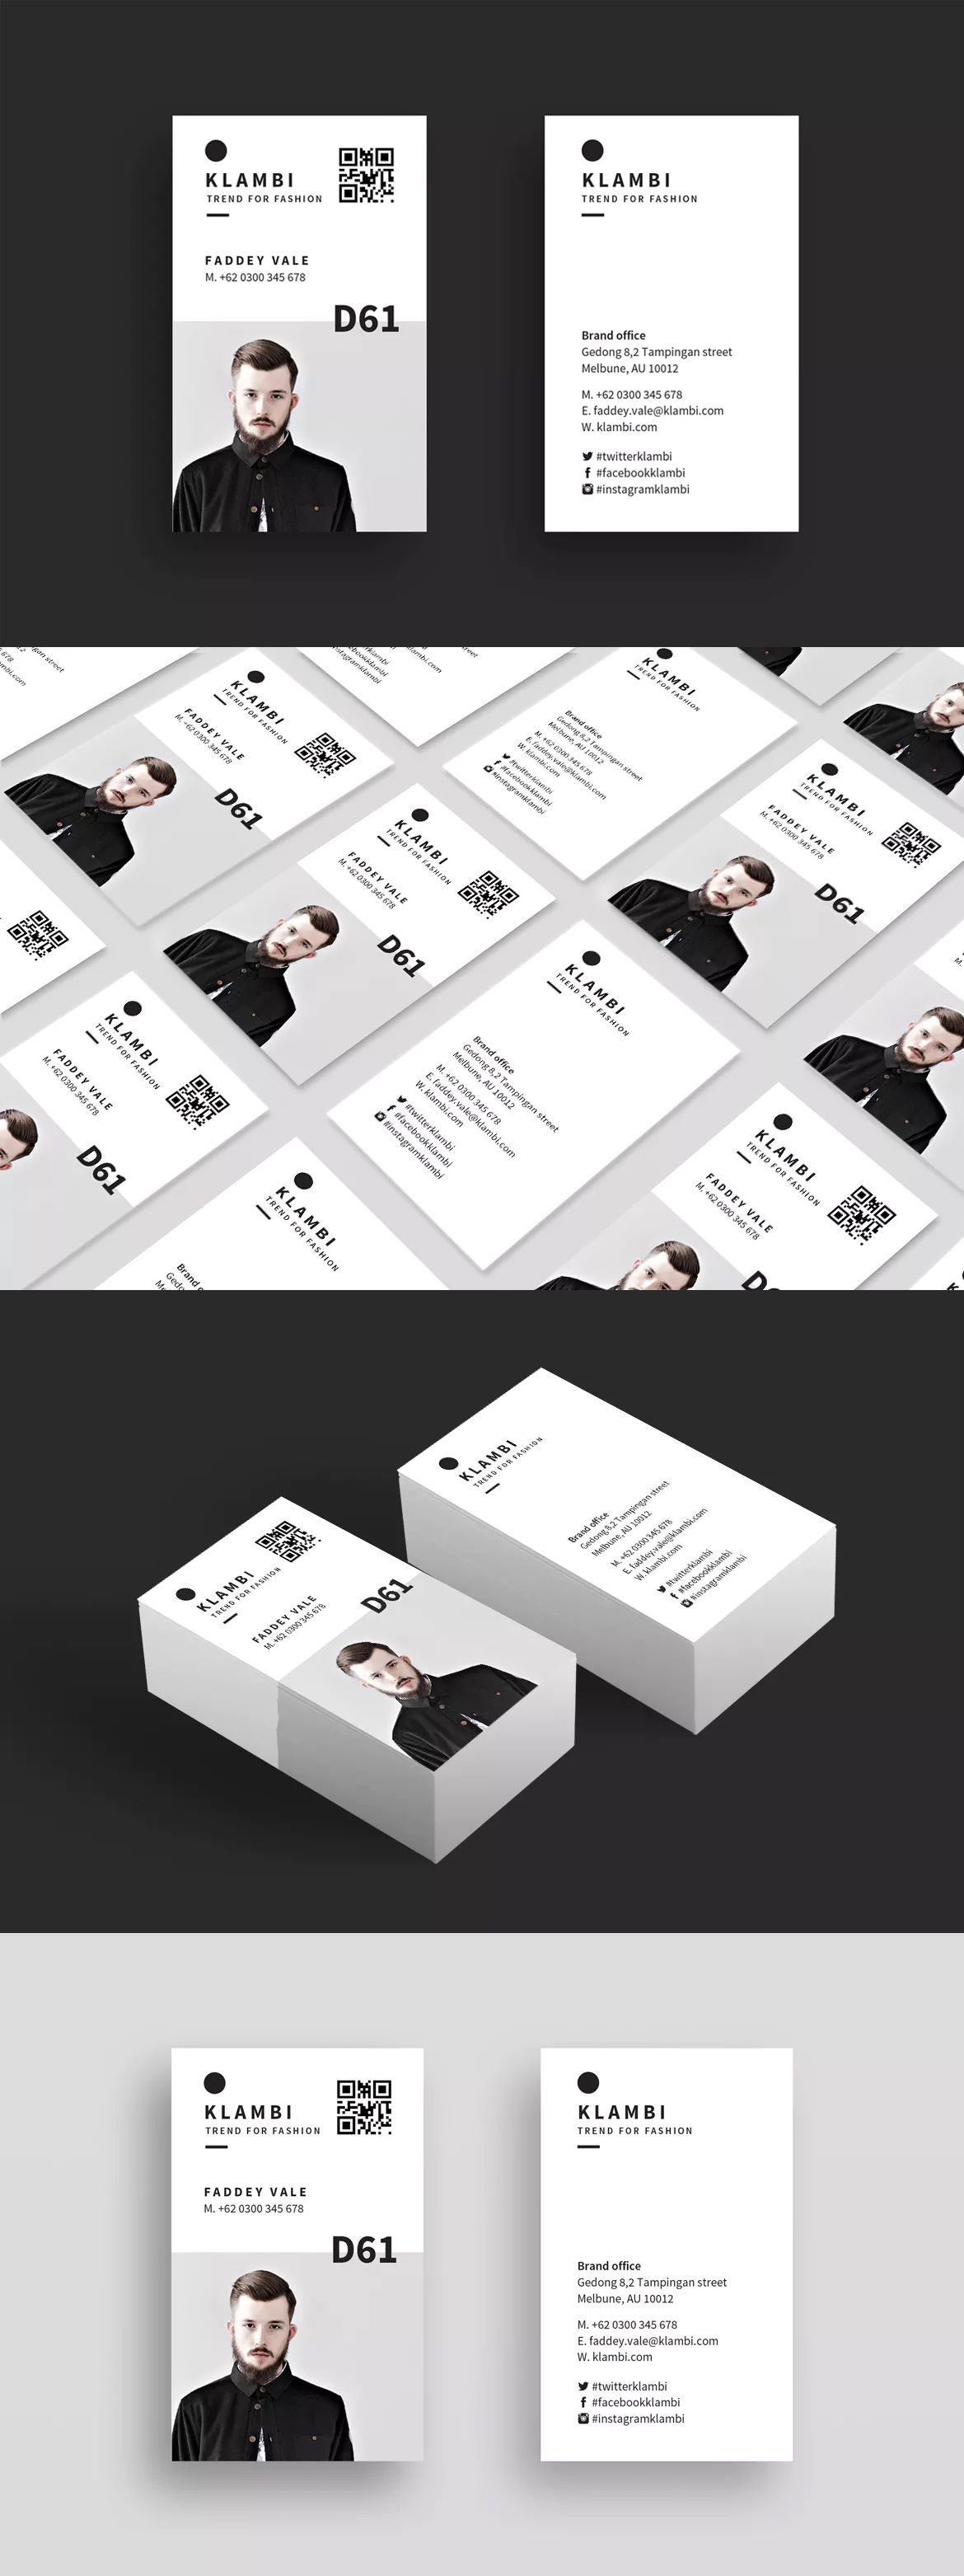 Business card template indesign indd business card templates business card by boxkayu on envato elements reheart Choice Image